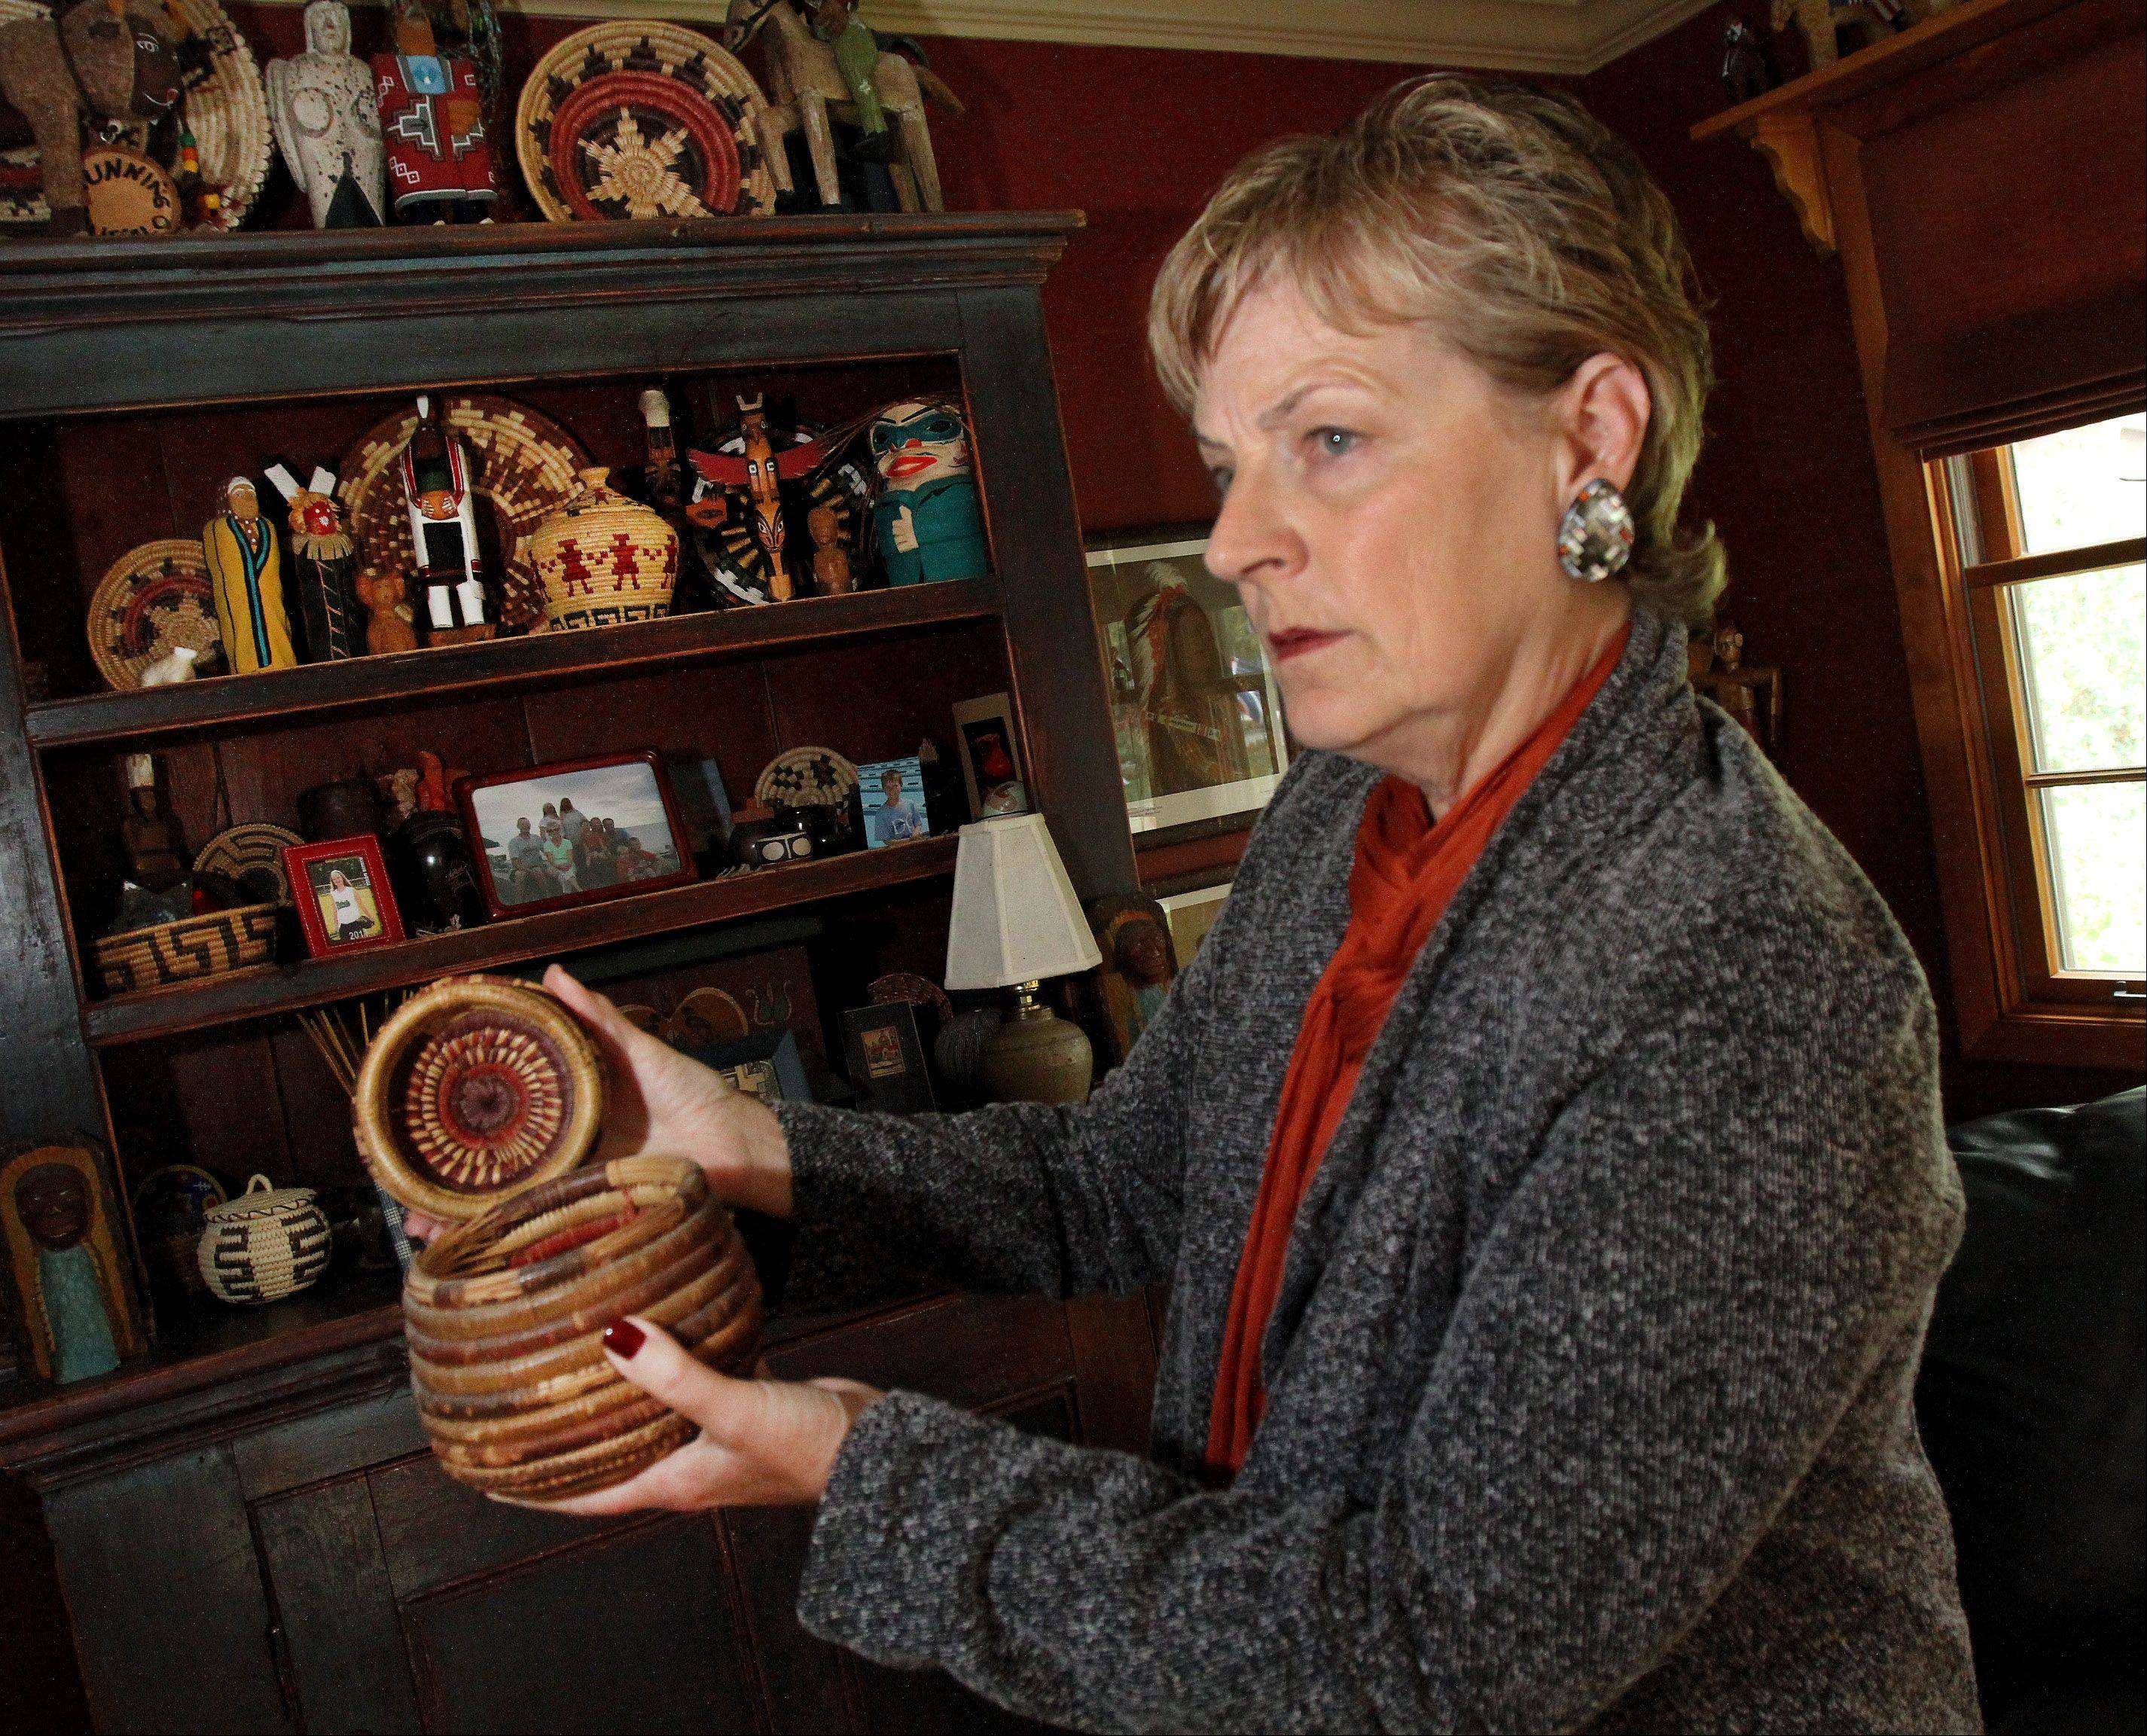 Antiques collector Linda Buehrer of Downers Grove holds a Hopi seed basket she bought at a previous Fox Valley Antiques Show. The next running of the Fall Fox Valley Antiques Show will be Oct. 20 and 21 at the Kane County Fairgrounds in St. Charles.